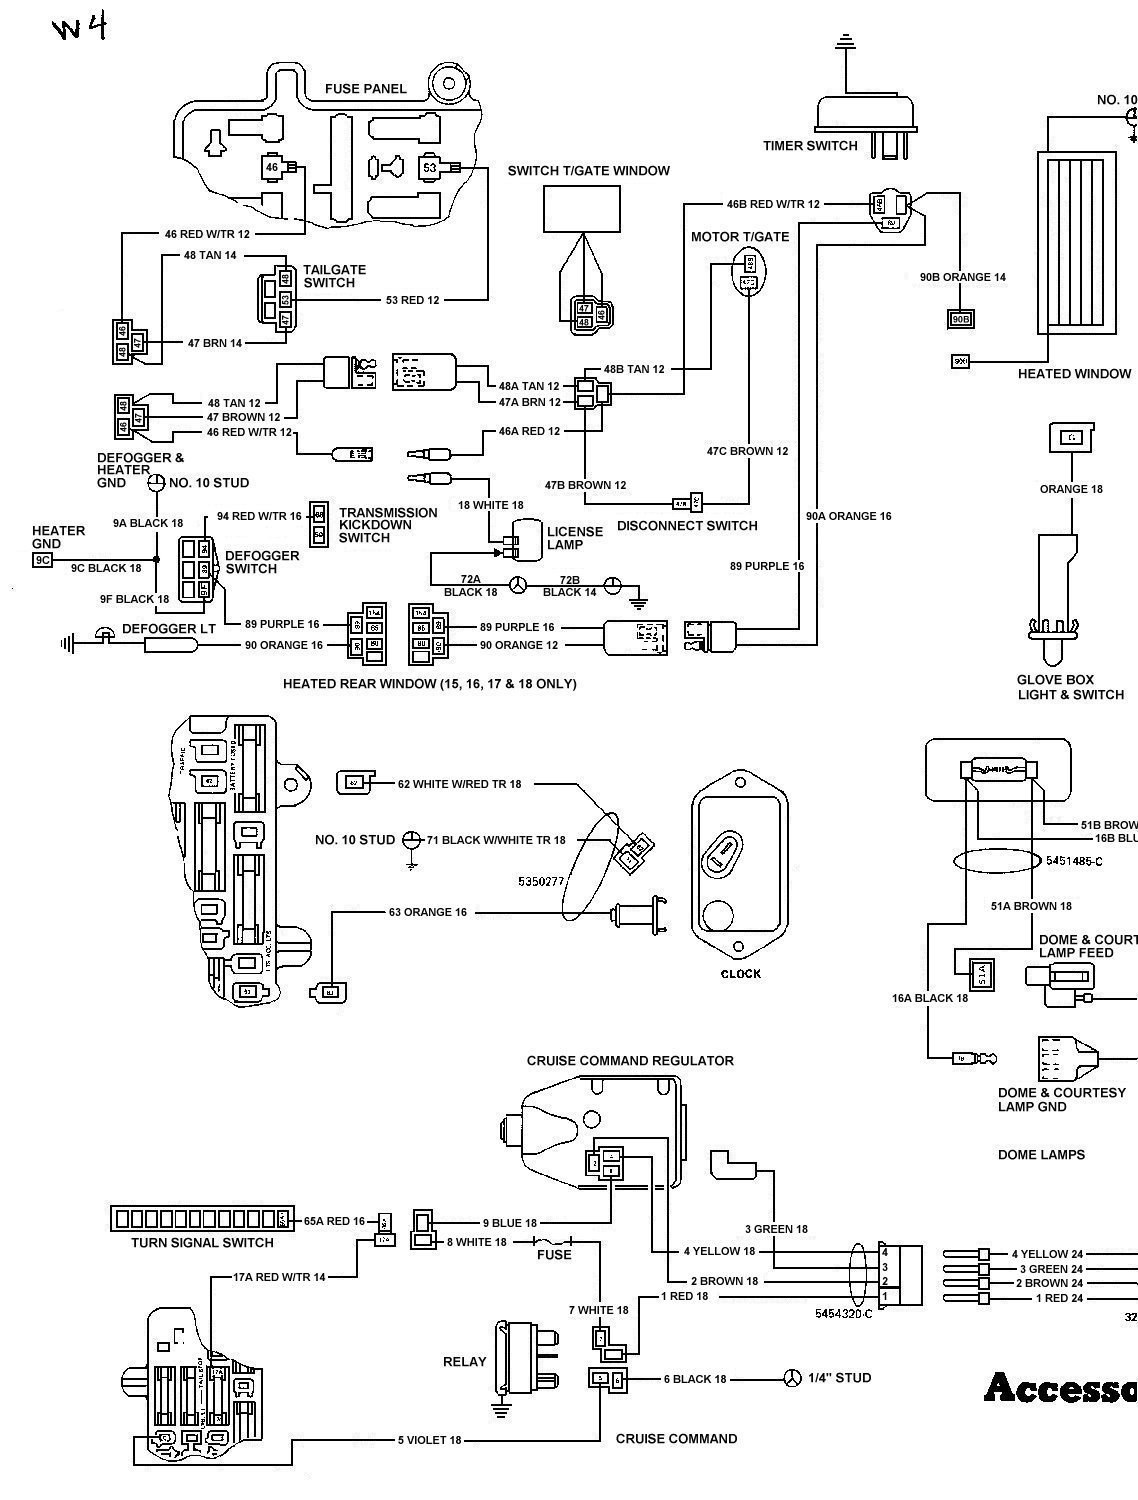 78 Dodge Starter Switch Wiring Diagram Turn Signal Library78